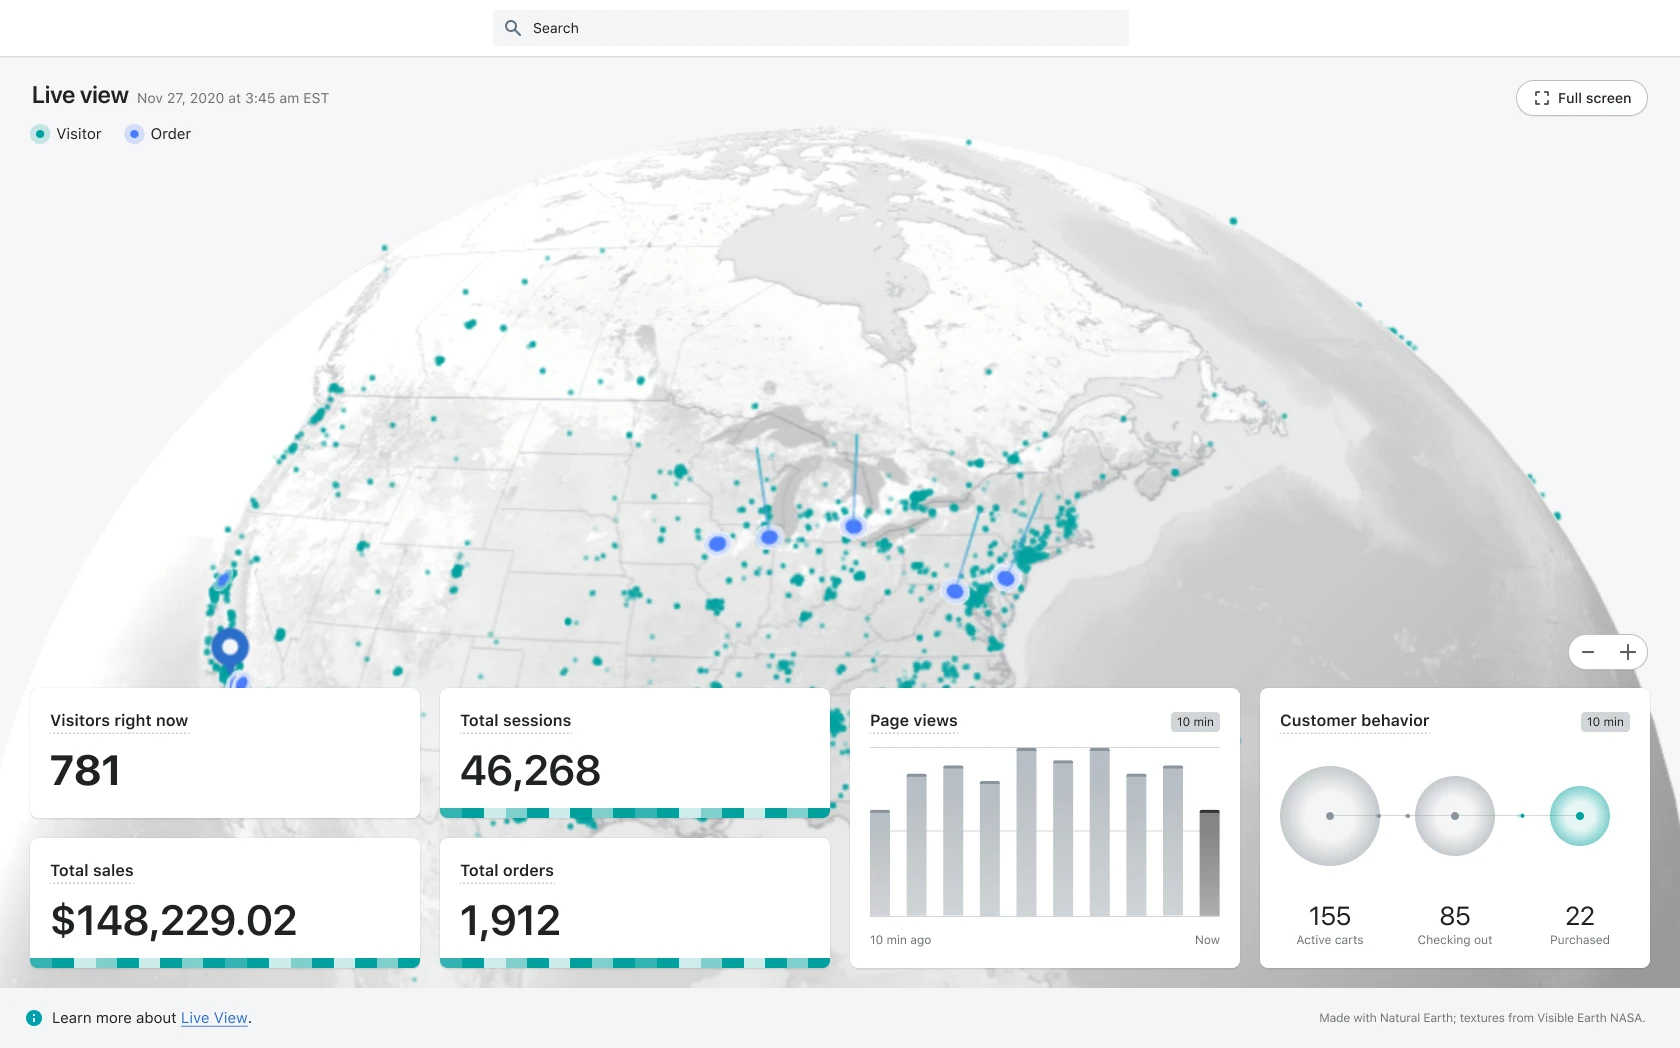 An image of the Shopify Analytics section in Live View. The image consists of an image of the earth that's focused on Canada and the US. There are dots of blue and green across the US and Canada representing visitors and orders to the Shopify store.  At the bottom of the image is a dashboard showcasing Visitors right now, Total sessions, Total Sales, Total orders, Page views, and Customer behaviour.